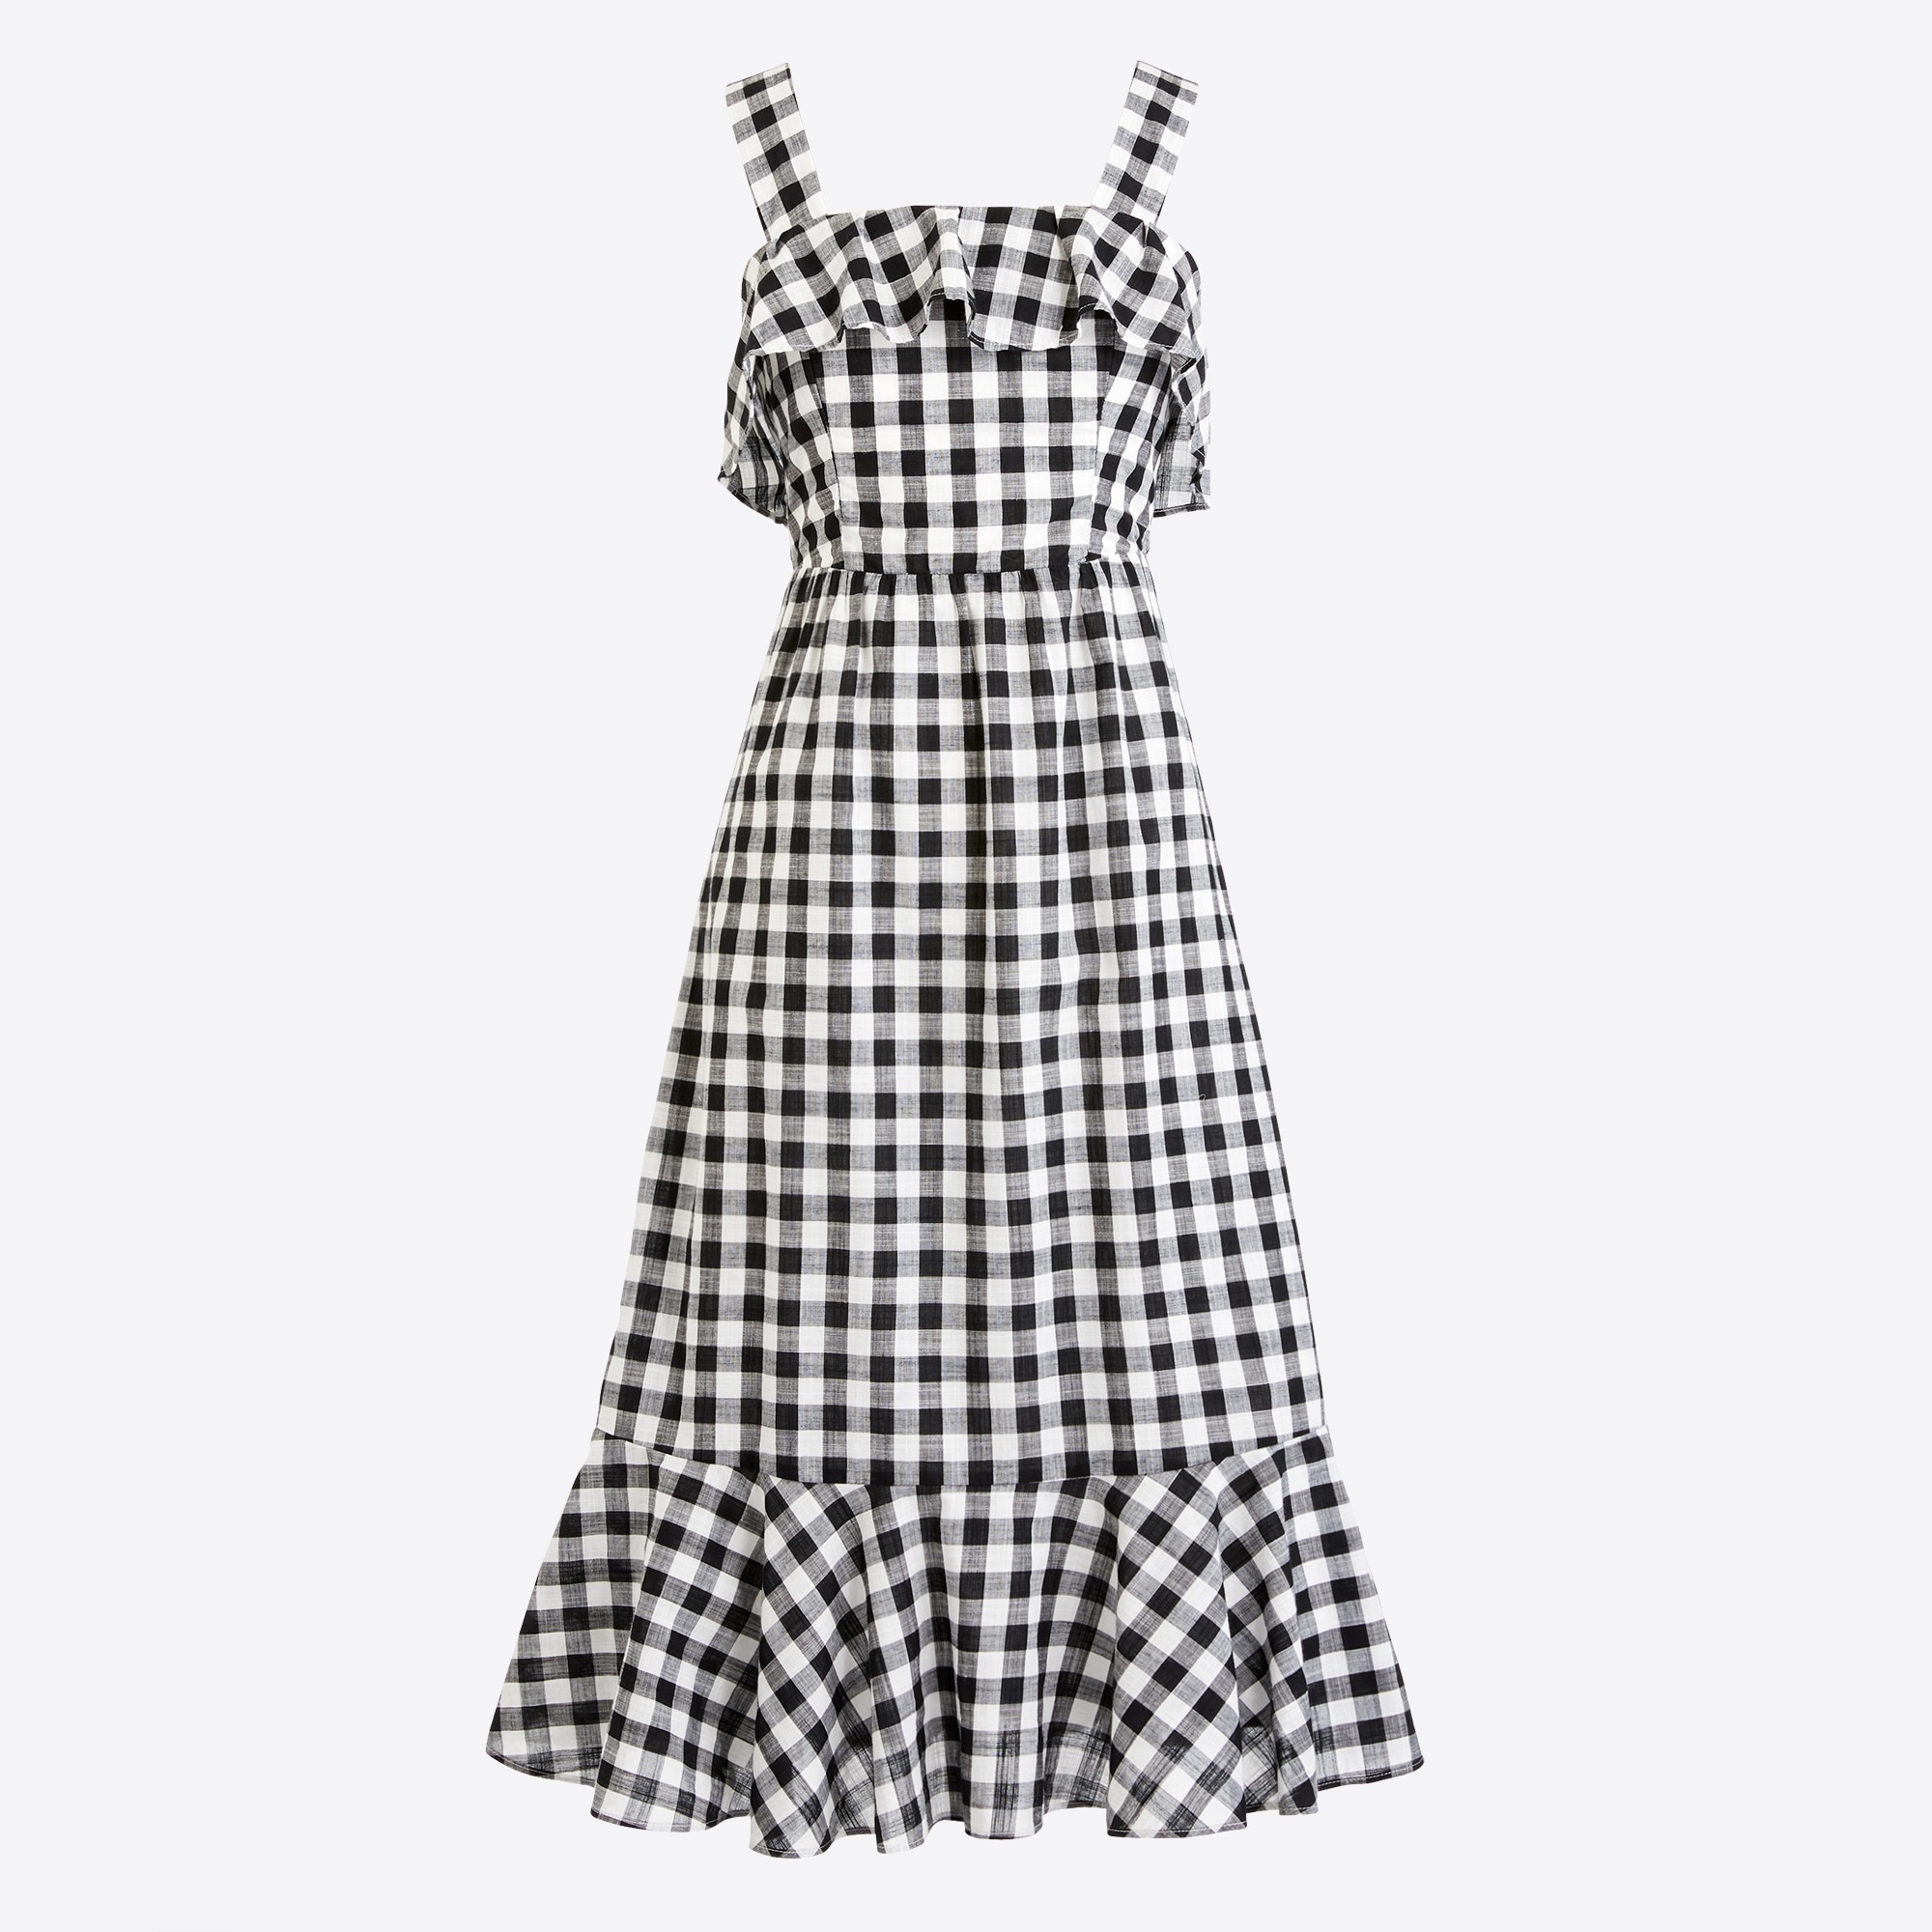 Midi dress in gingham